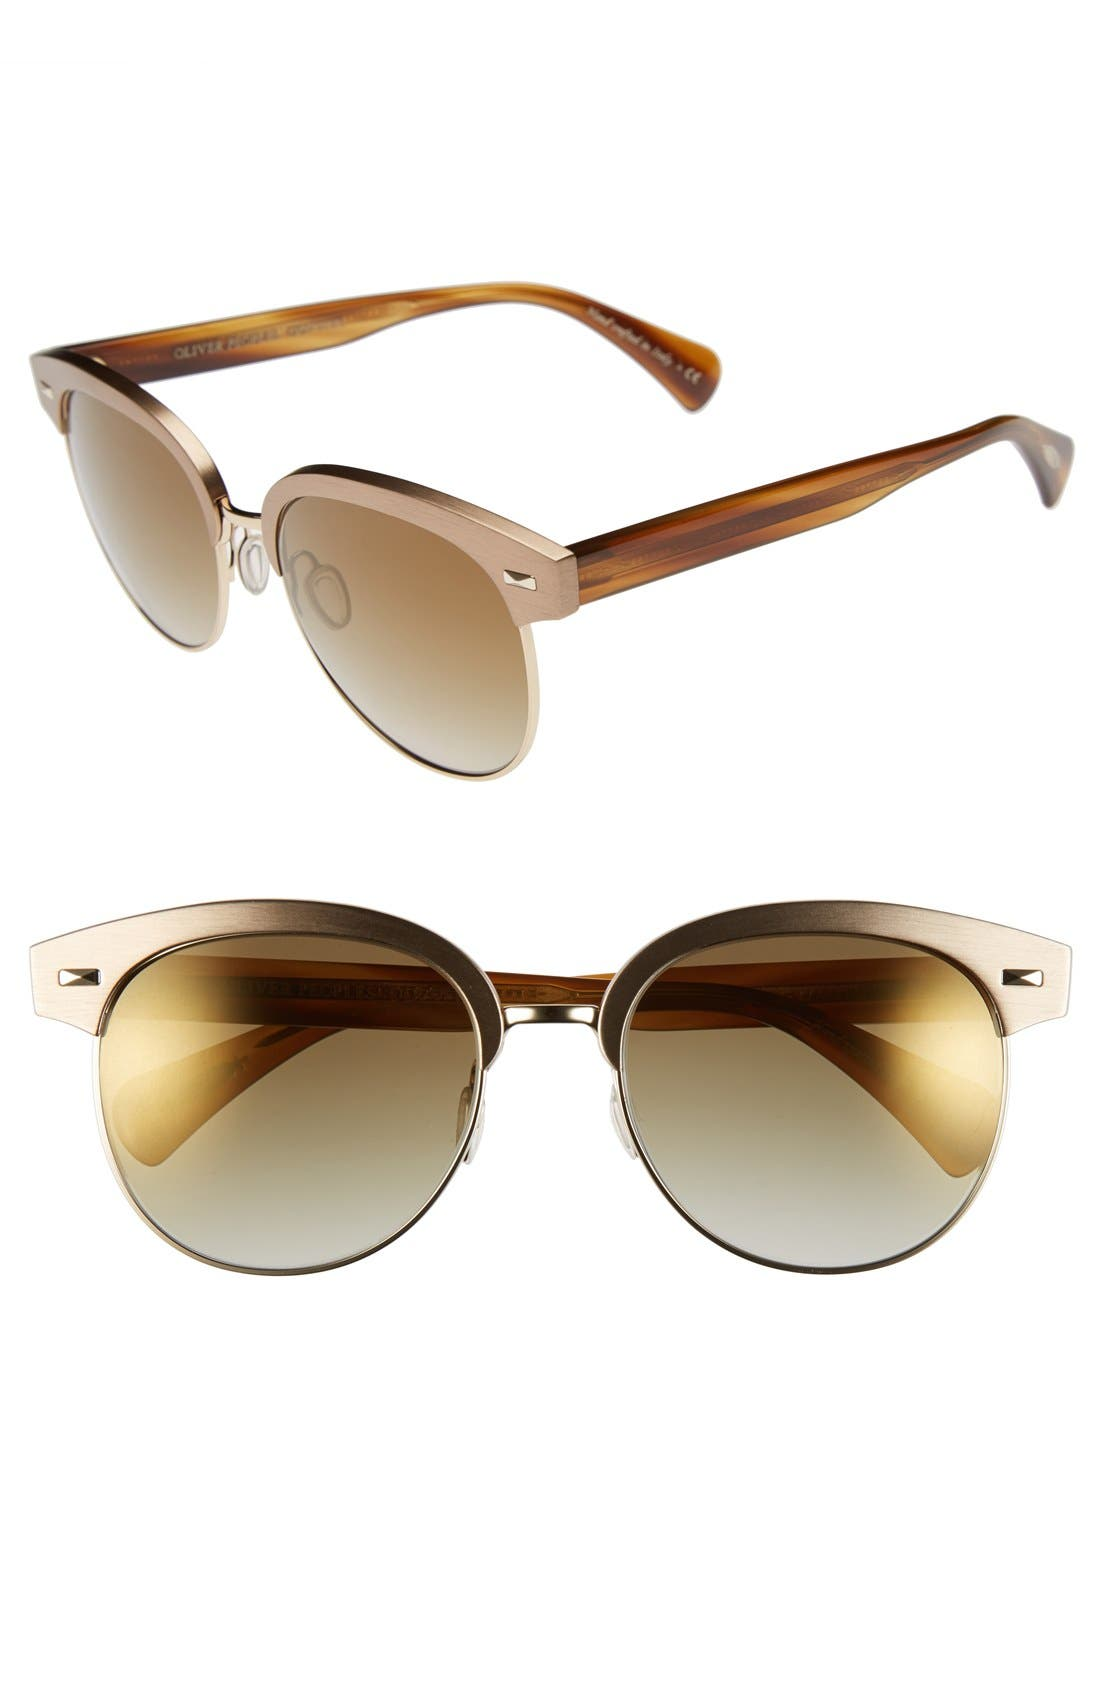 Main Image - Oliver Peoples 'Shaelie' 55mm Sunglasses